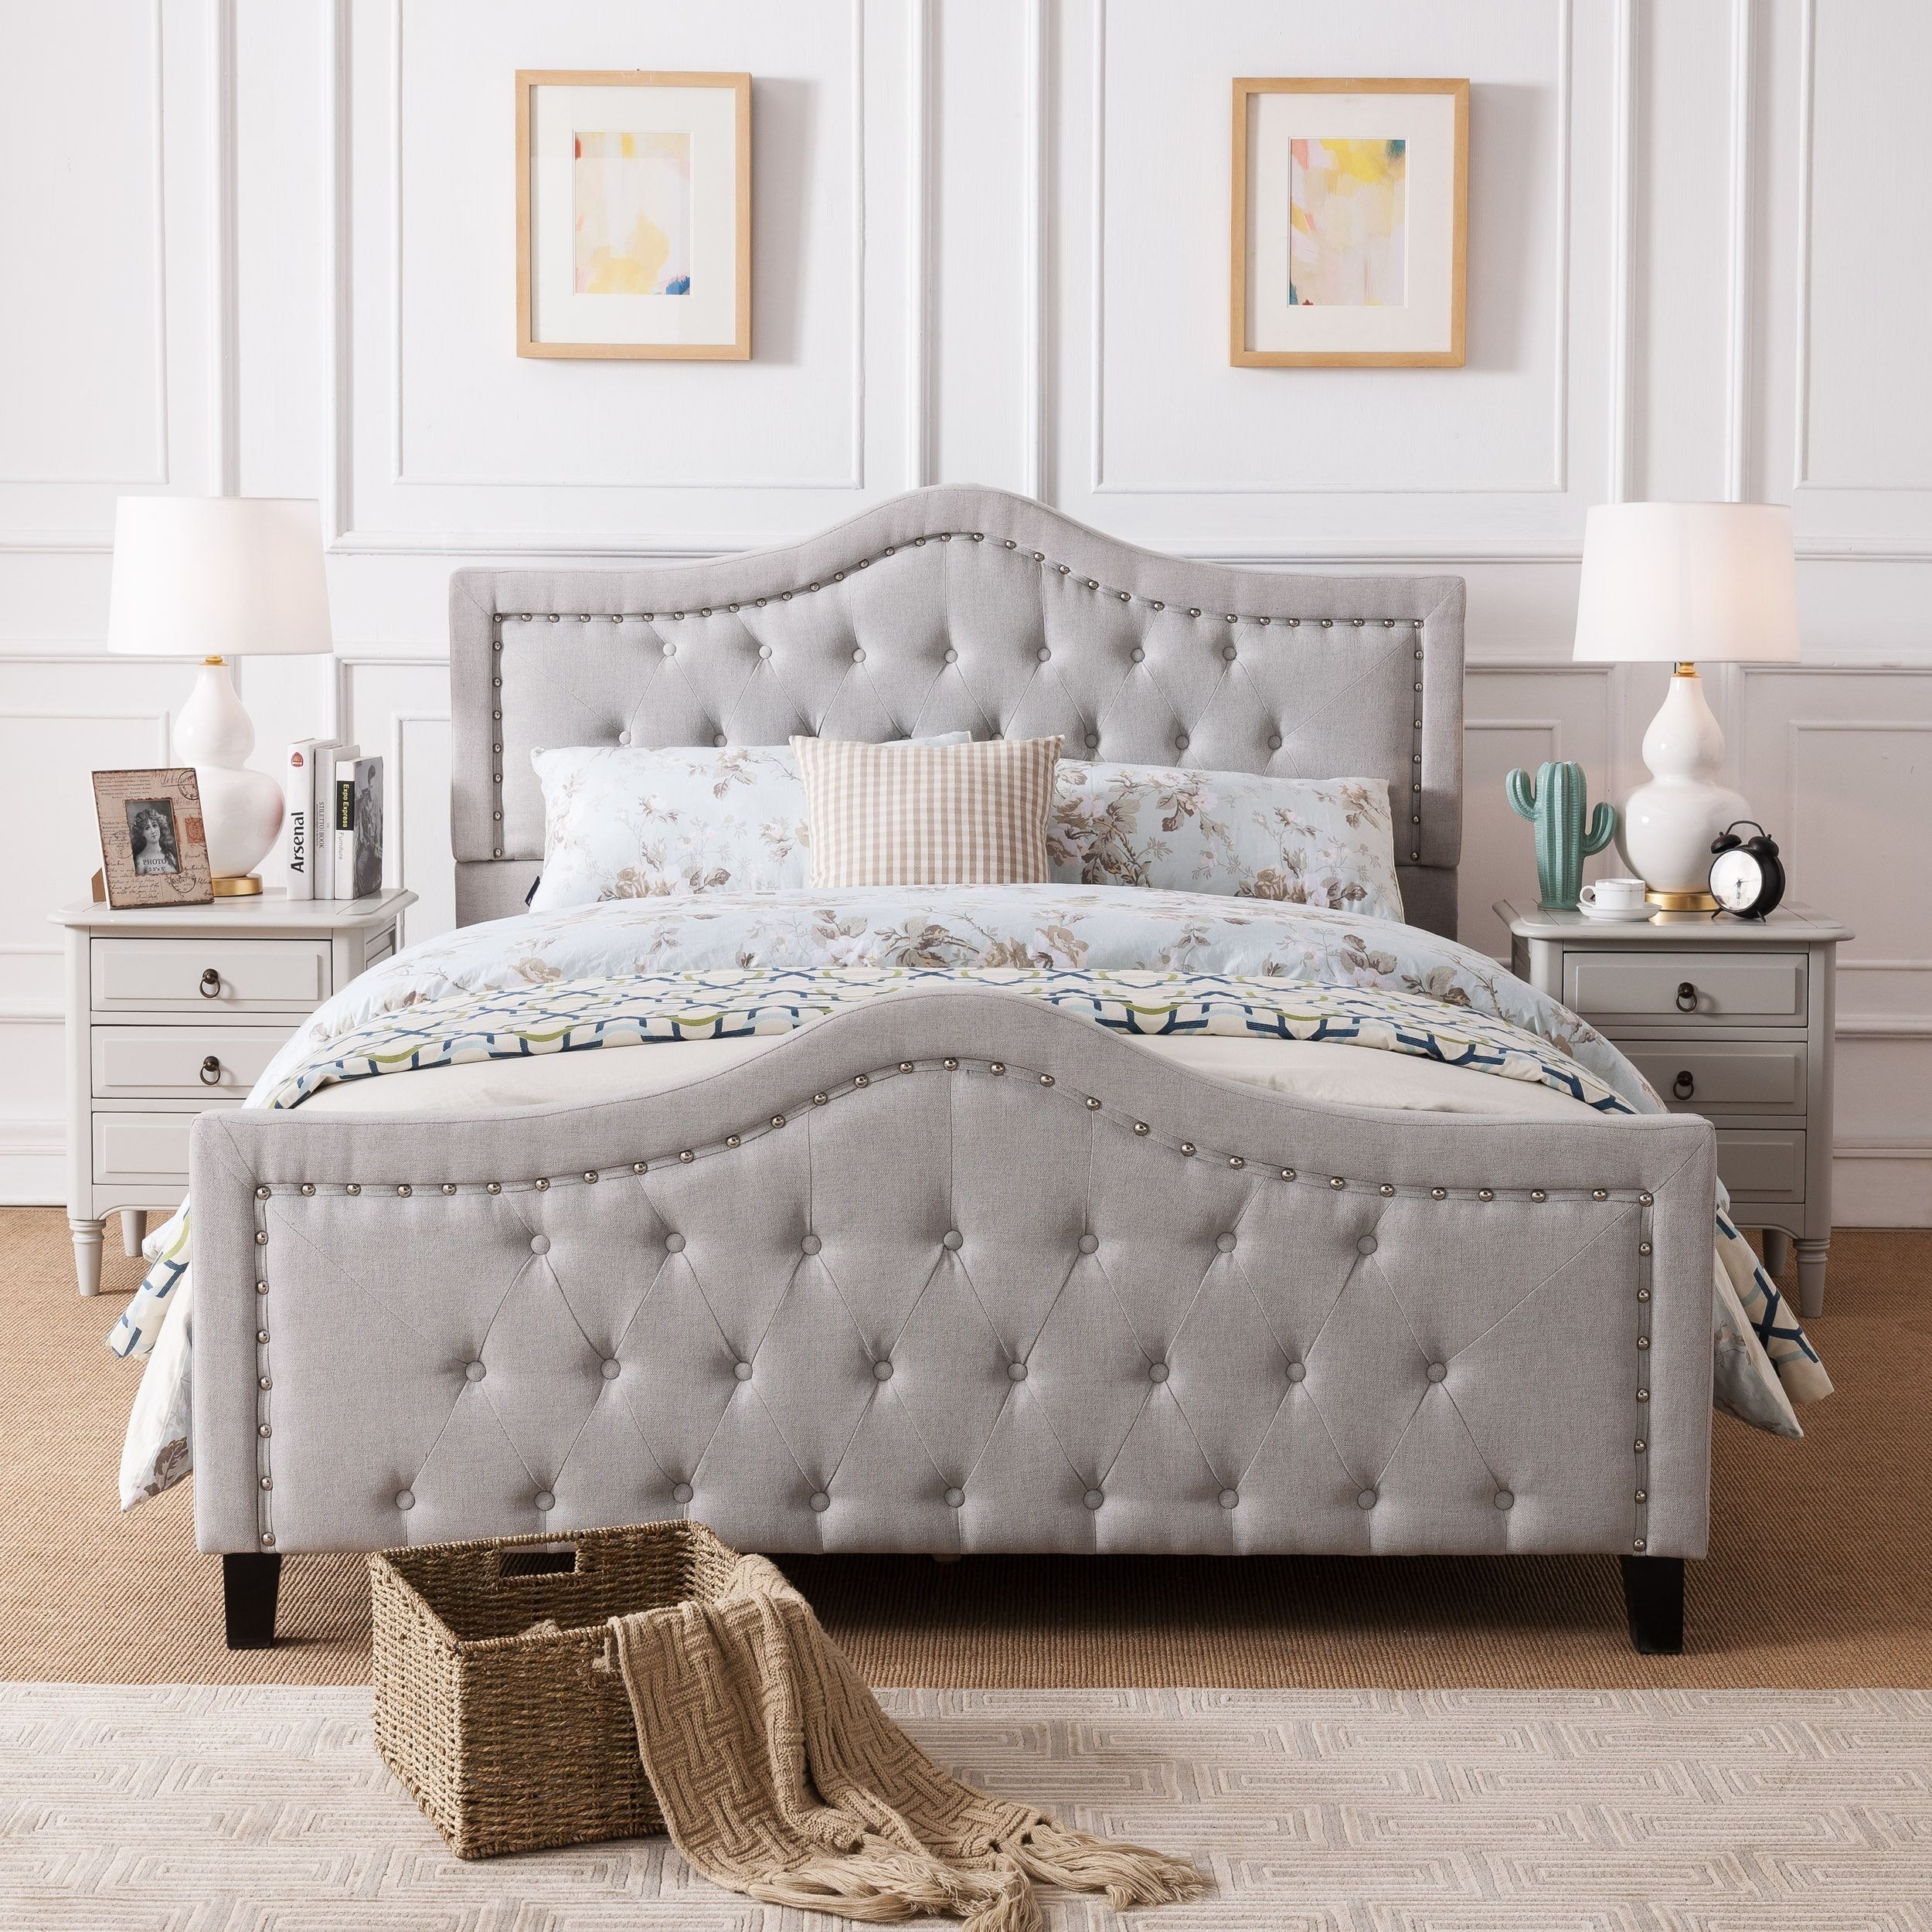 Virgil upholstered tufted fabric queen bed set by christopher knight